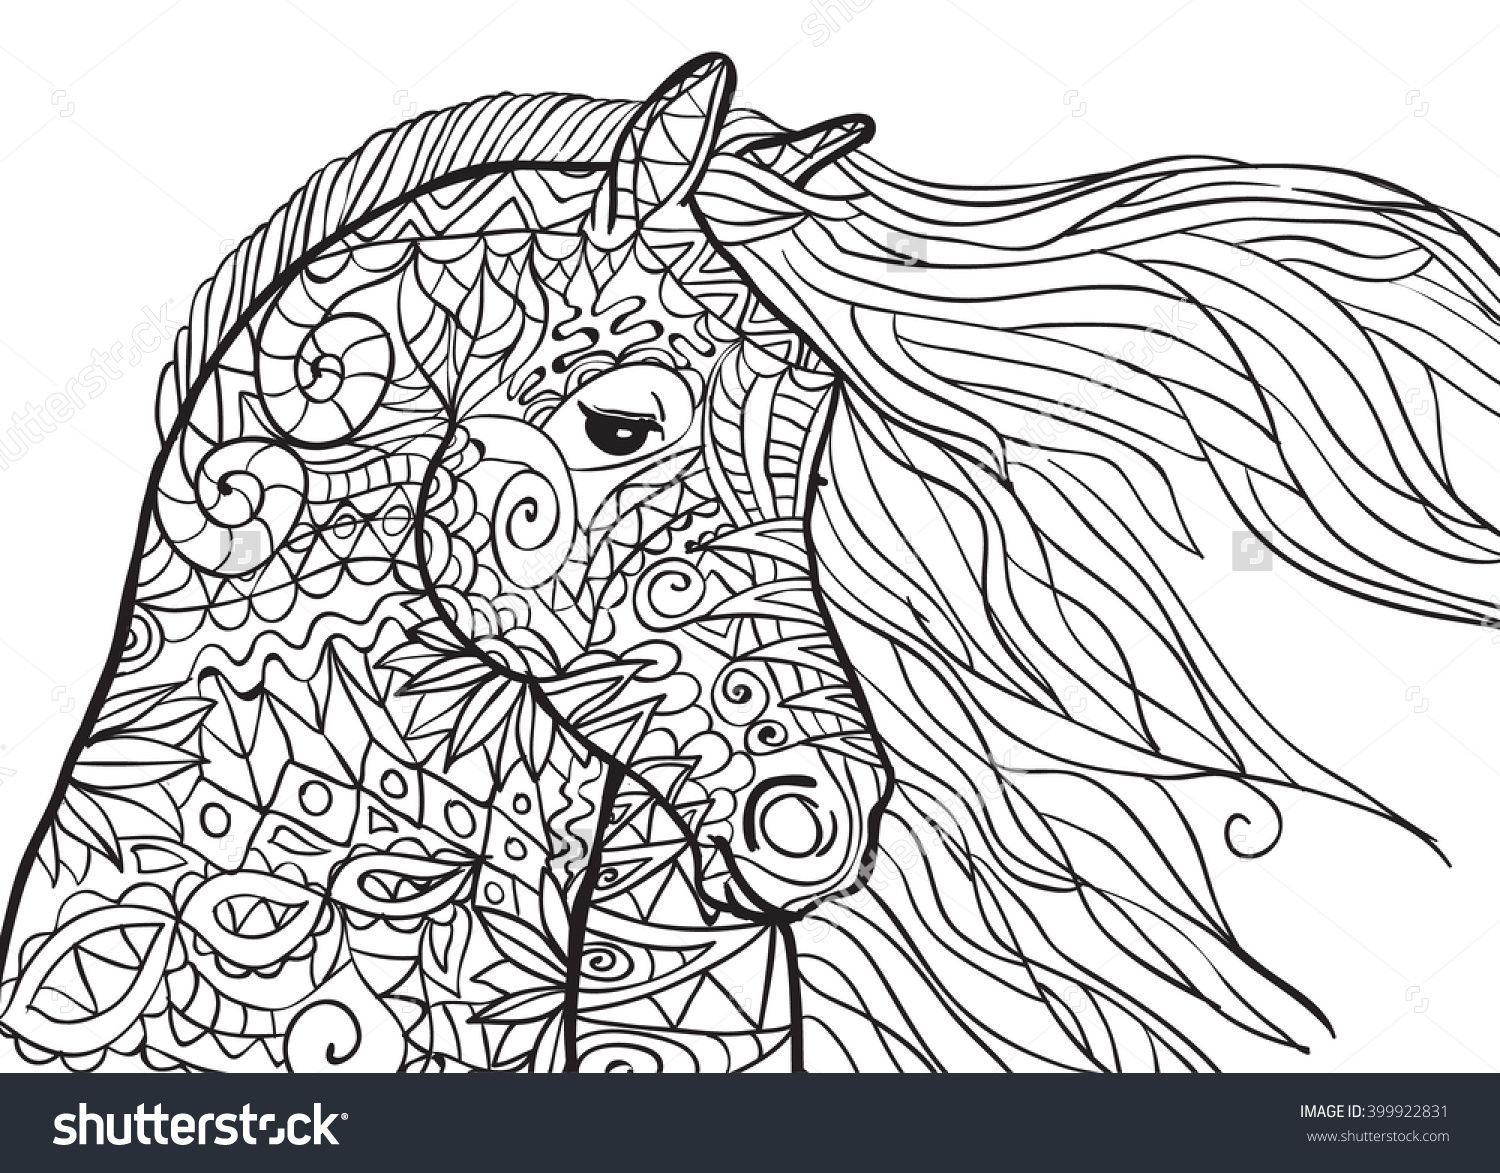 coloring pages horse head - photo#34